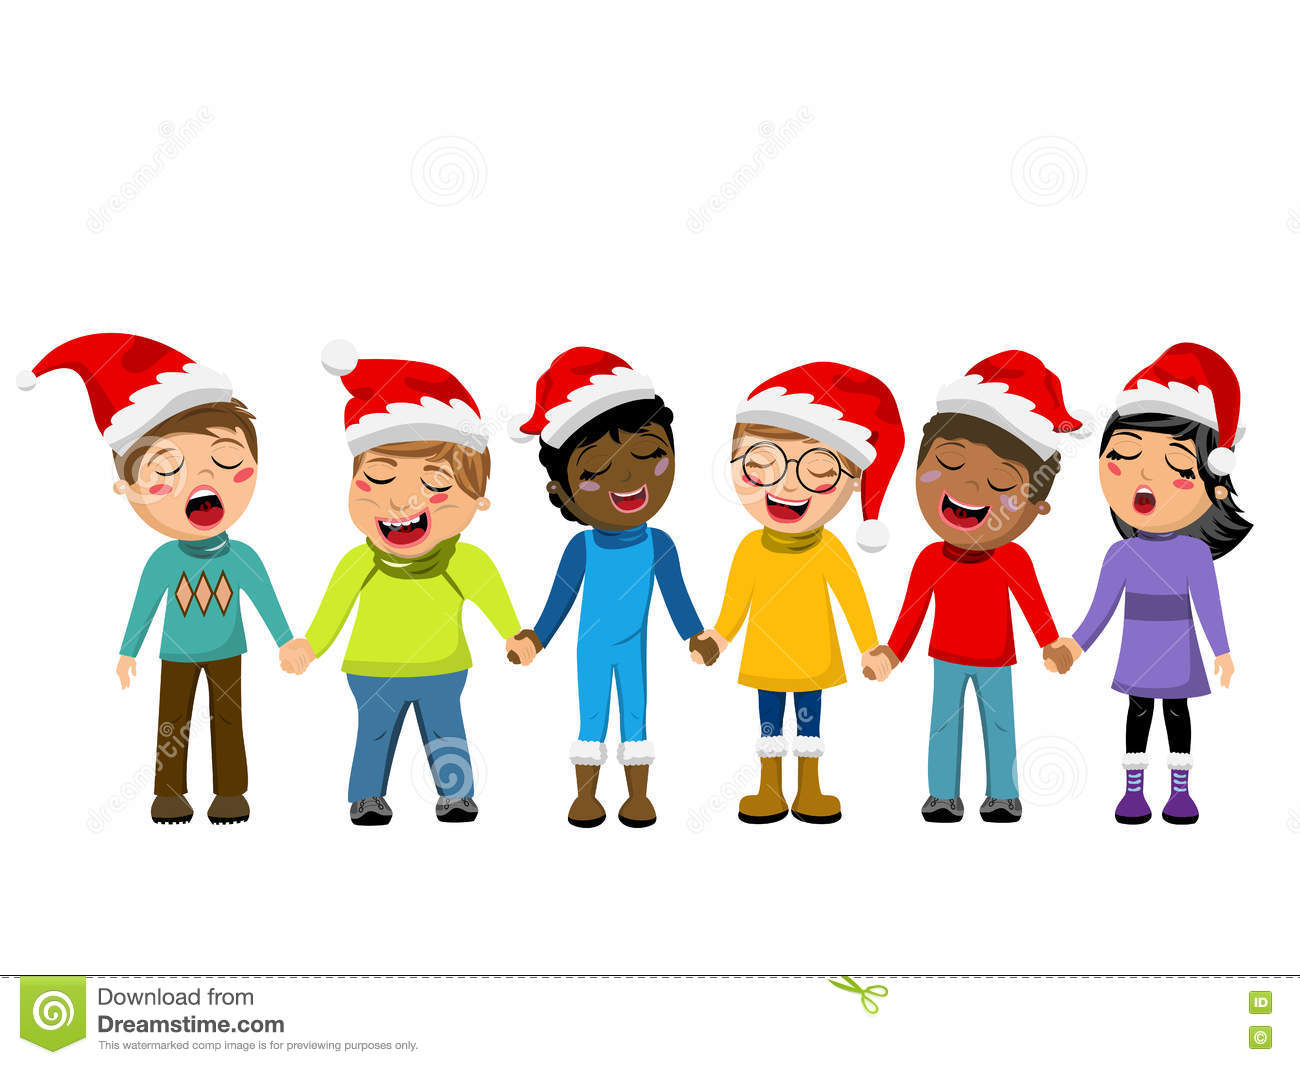 b0f2ba10aa94c Multicultural kids wearing xmas hat singing Christmas carol hand in hand  isolated. More similar stock illustrations